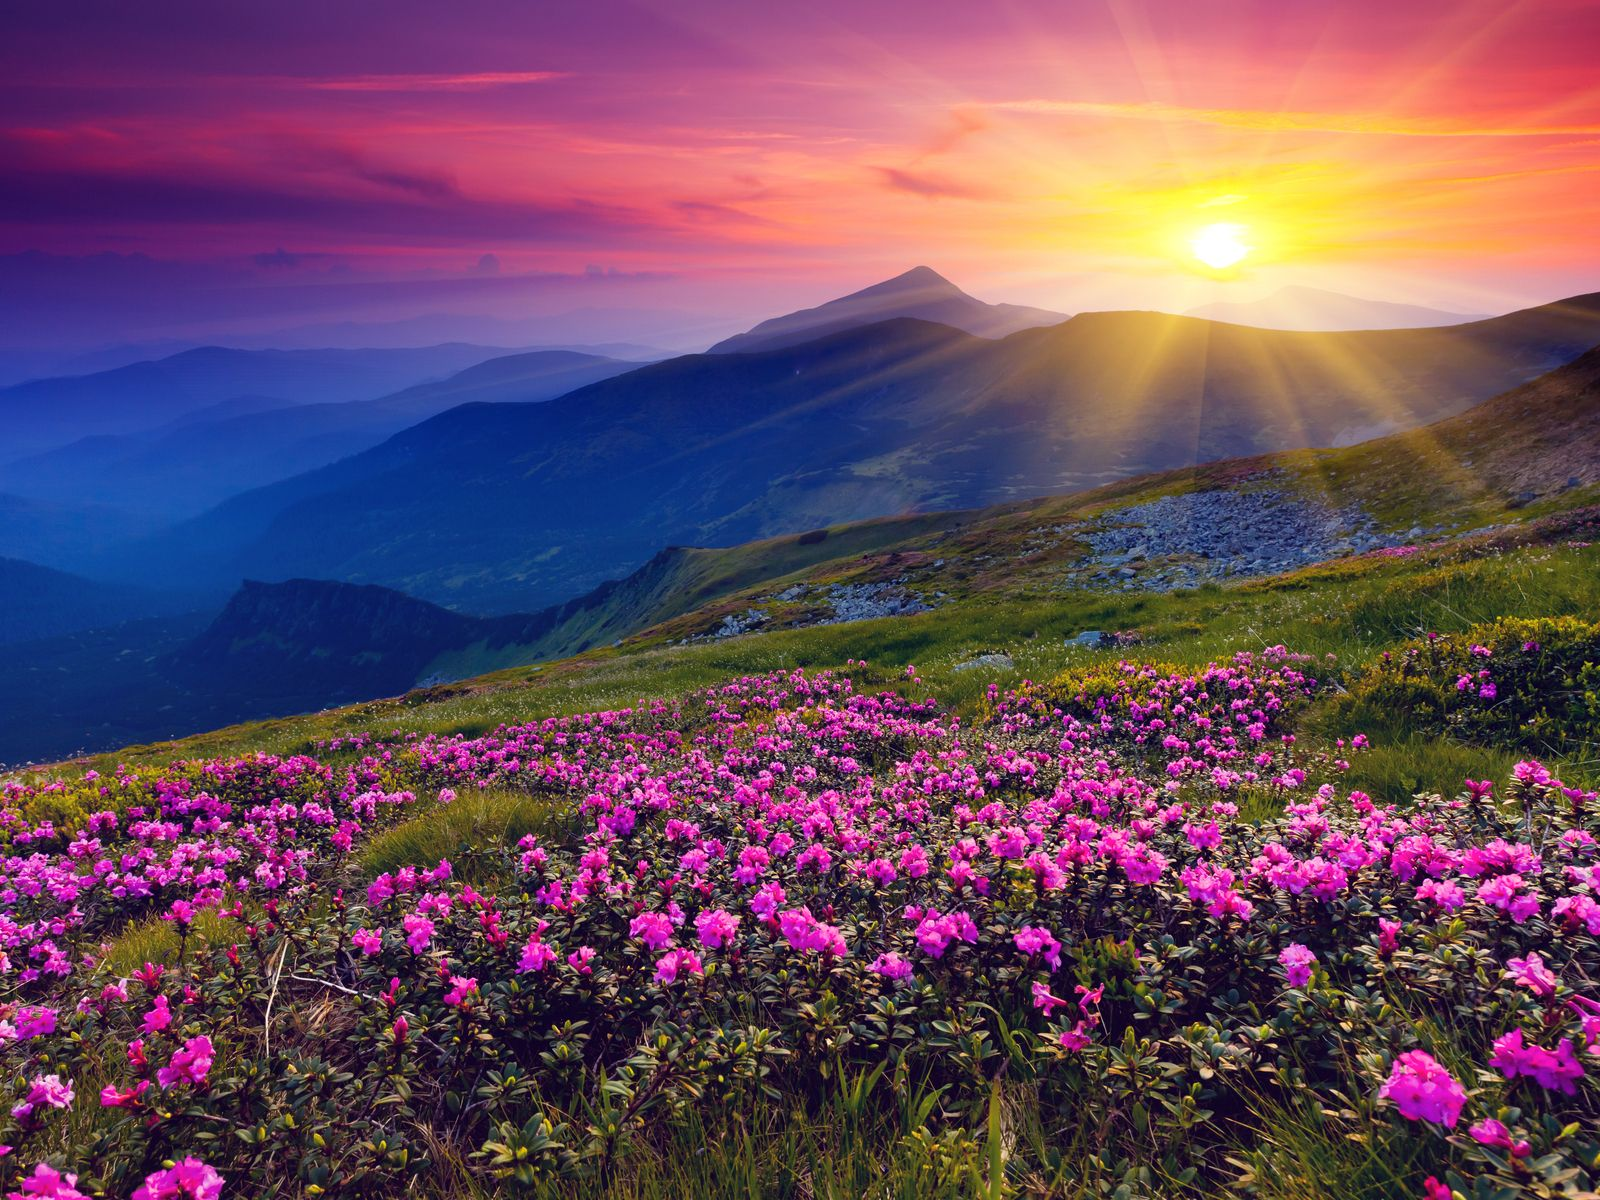 Meadows Green Meadows Wild Purple Flowers Mountains And Sunset Landscape Beautiful Landscapes Landscape Photography Beautiful Nature